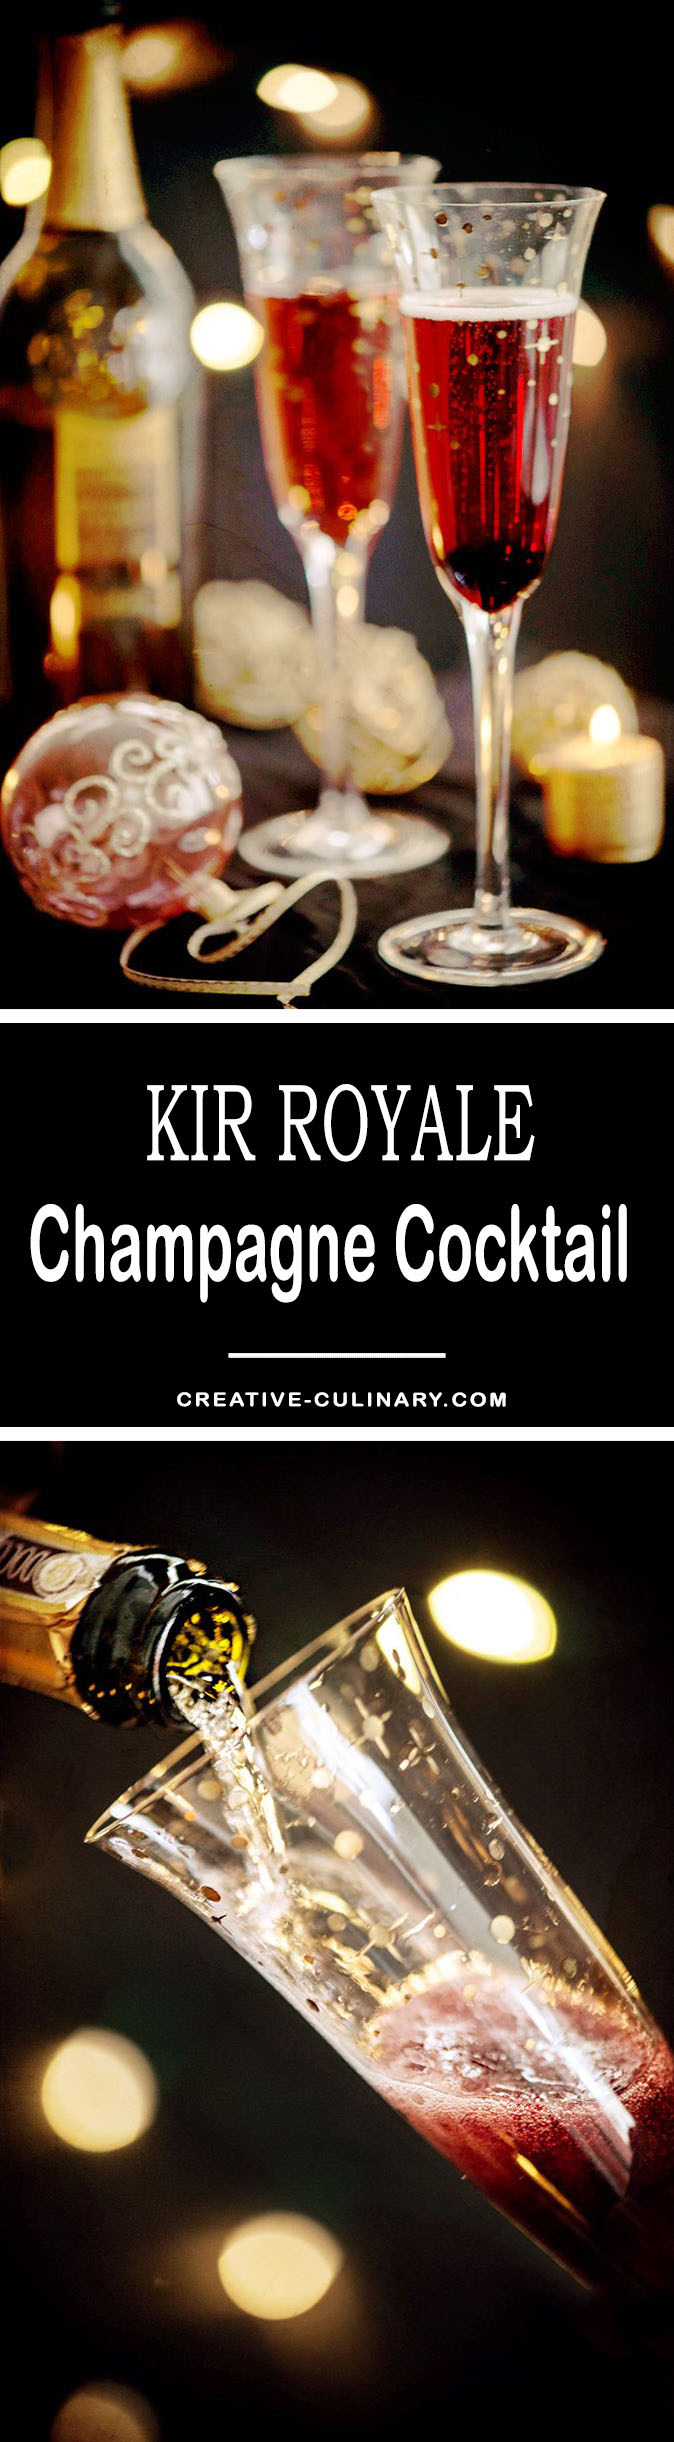 Kir Royale Cocktail - Simple but beautiful. It's made with Crème de Cassis and bubbly...that's all you need!